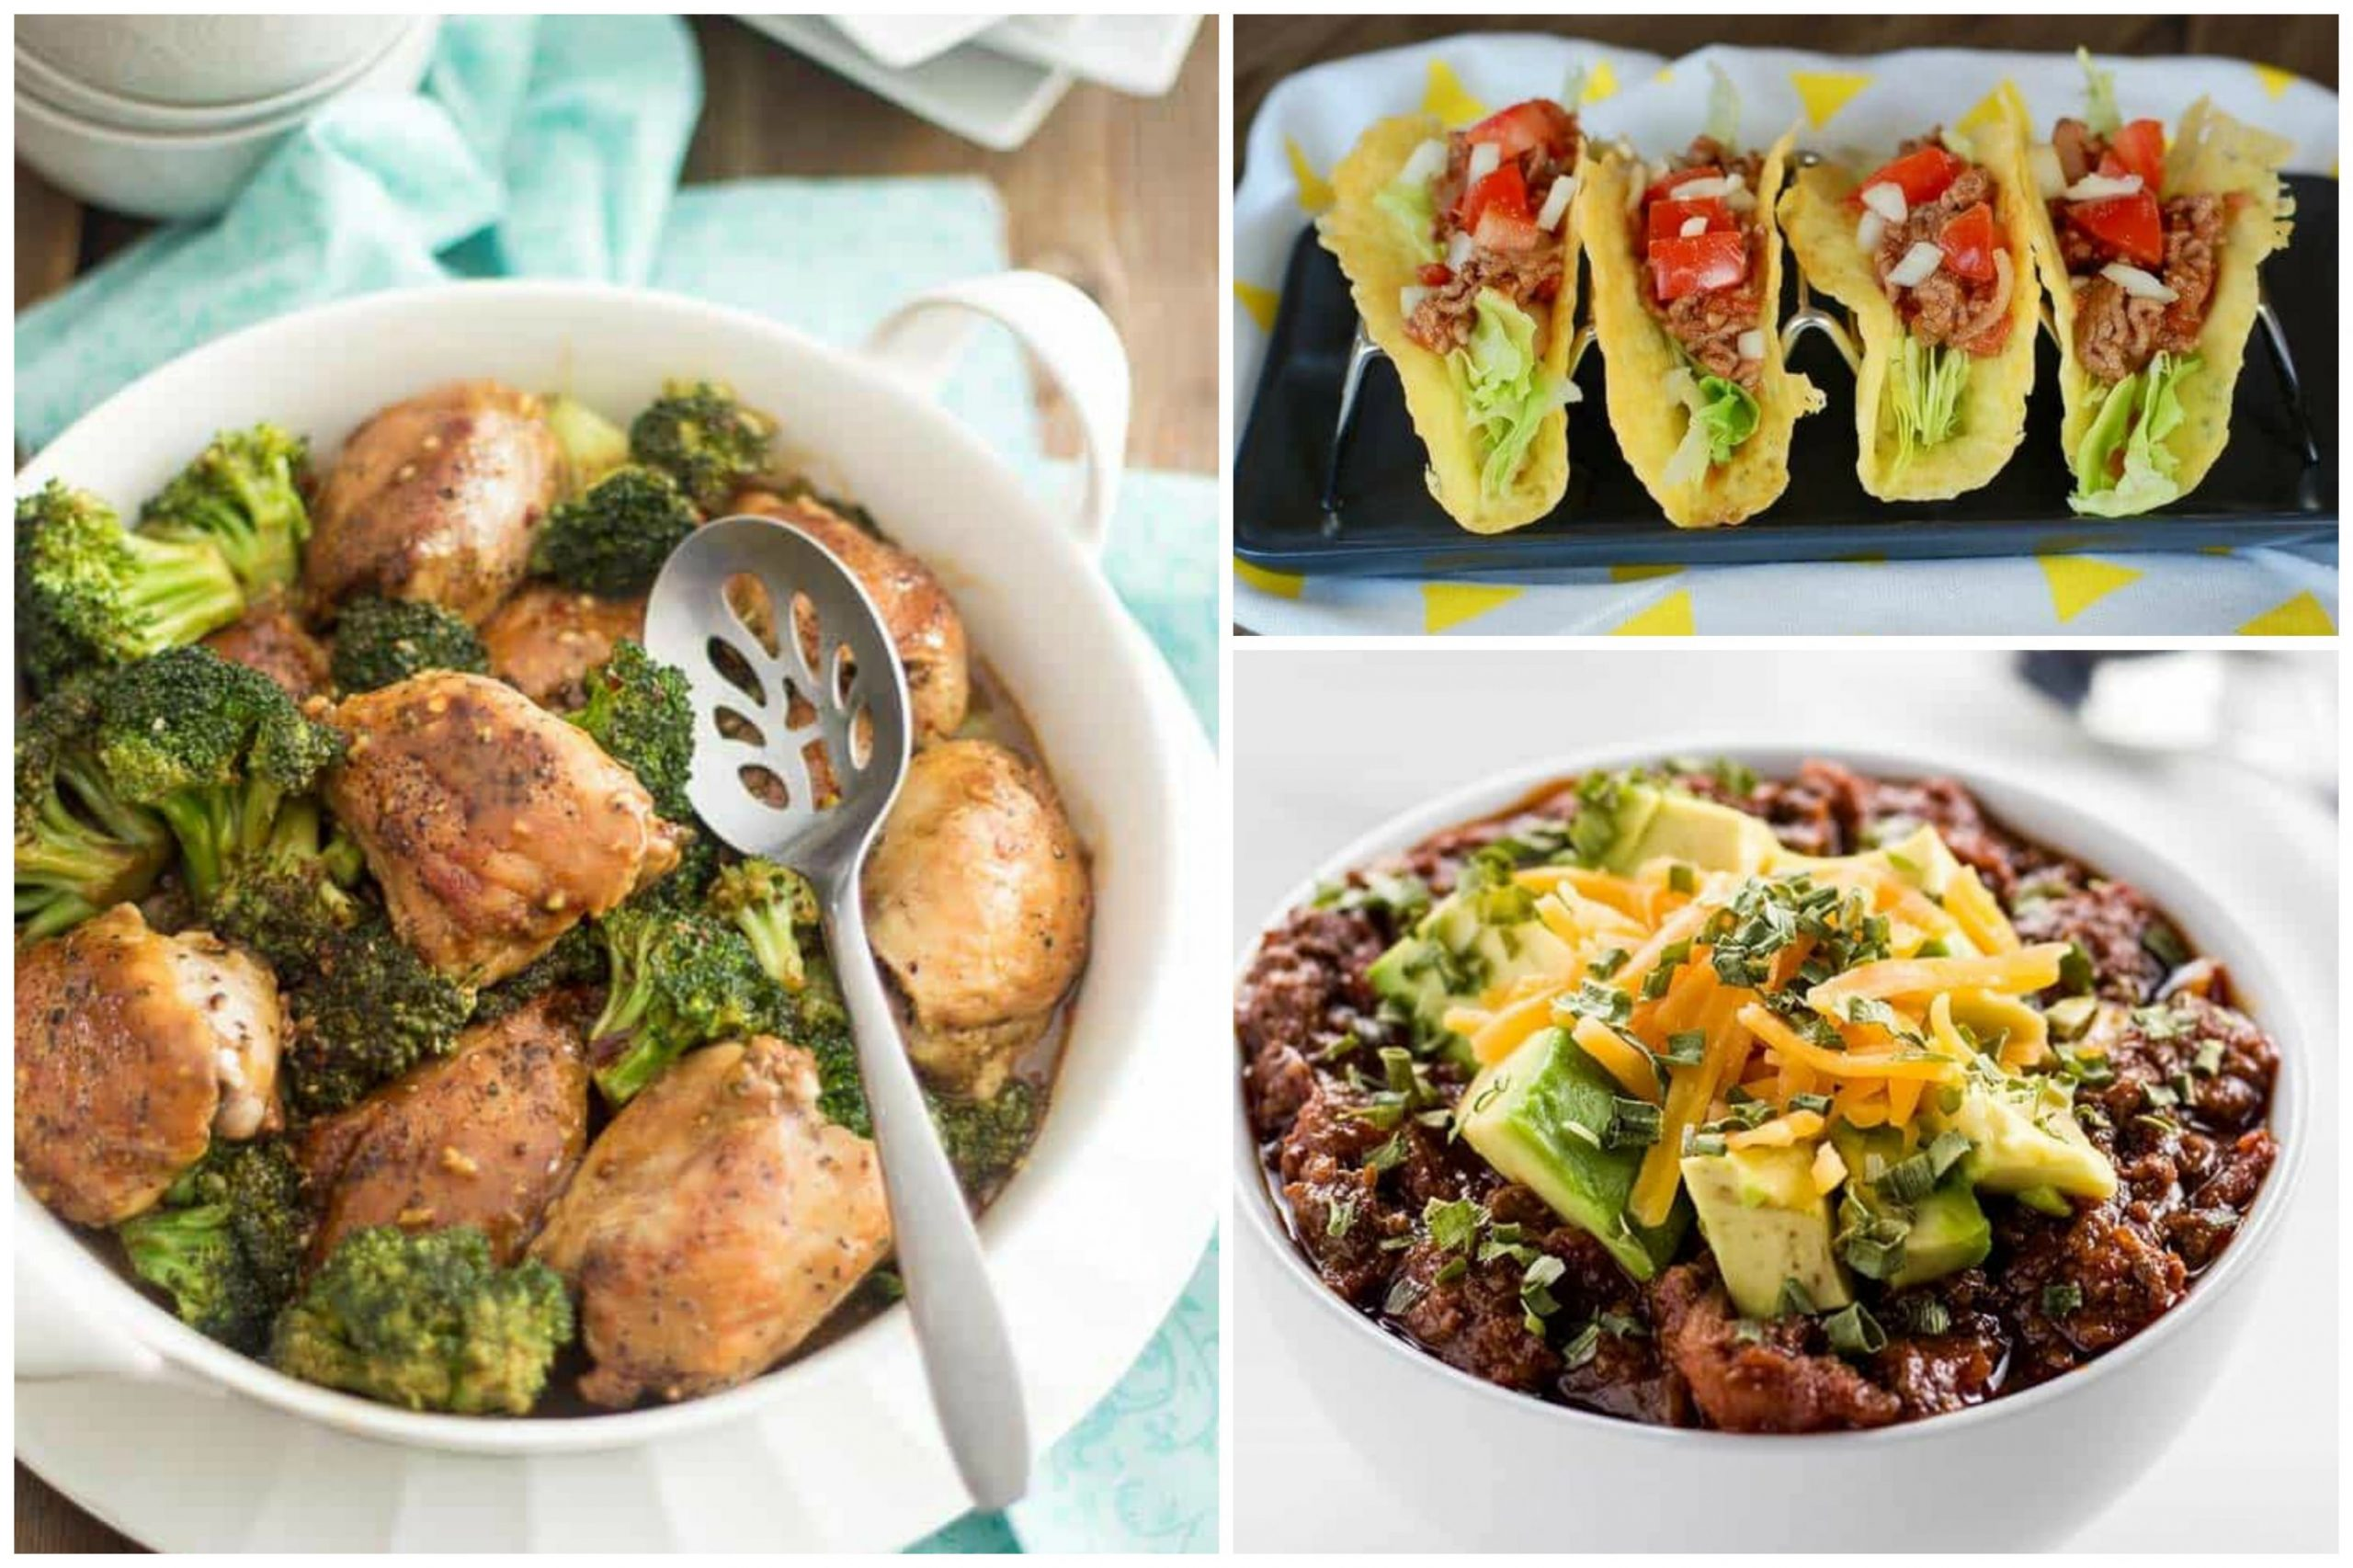 Keto Recipes: 12 Delicious Low Carb Meals to Help You Lose Weight Fast - Food Recipes That Help You Lose Weight